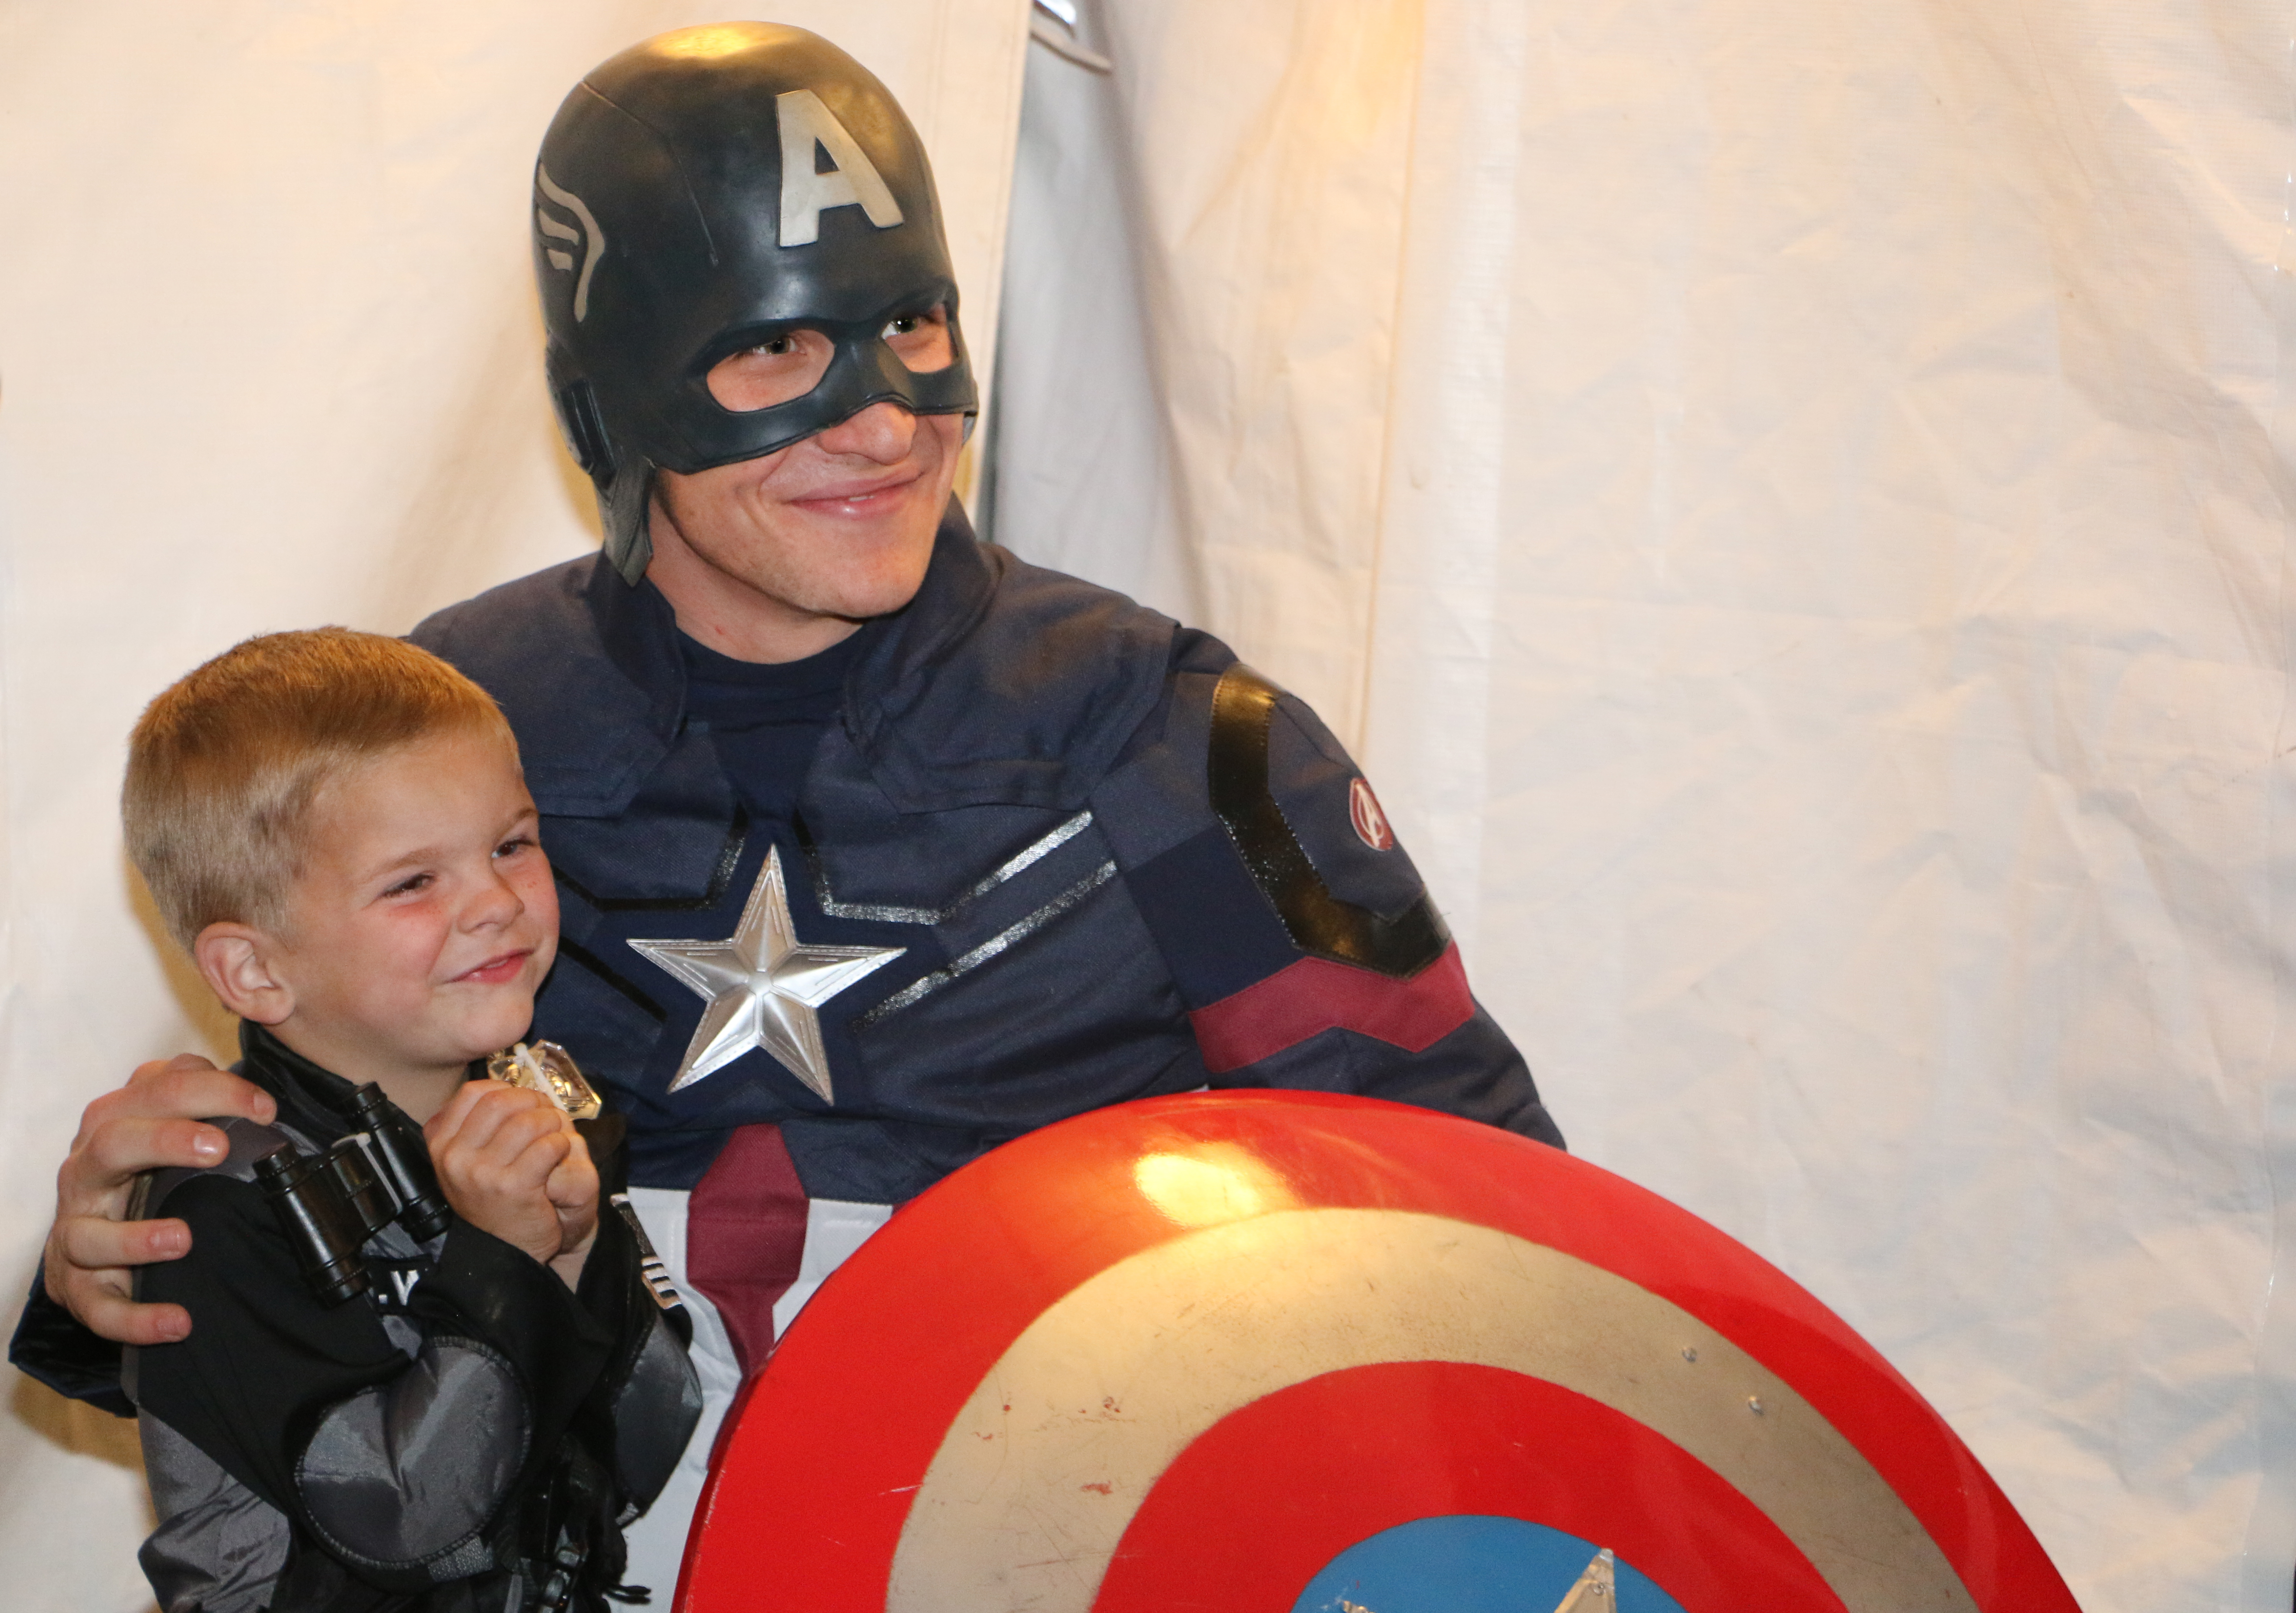 Captain America and child in costume